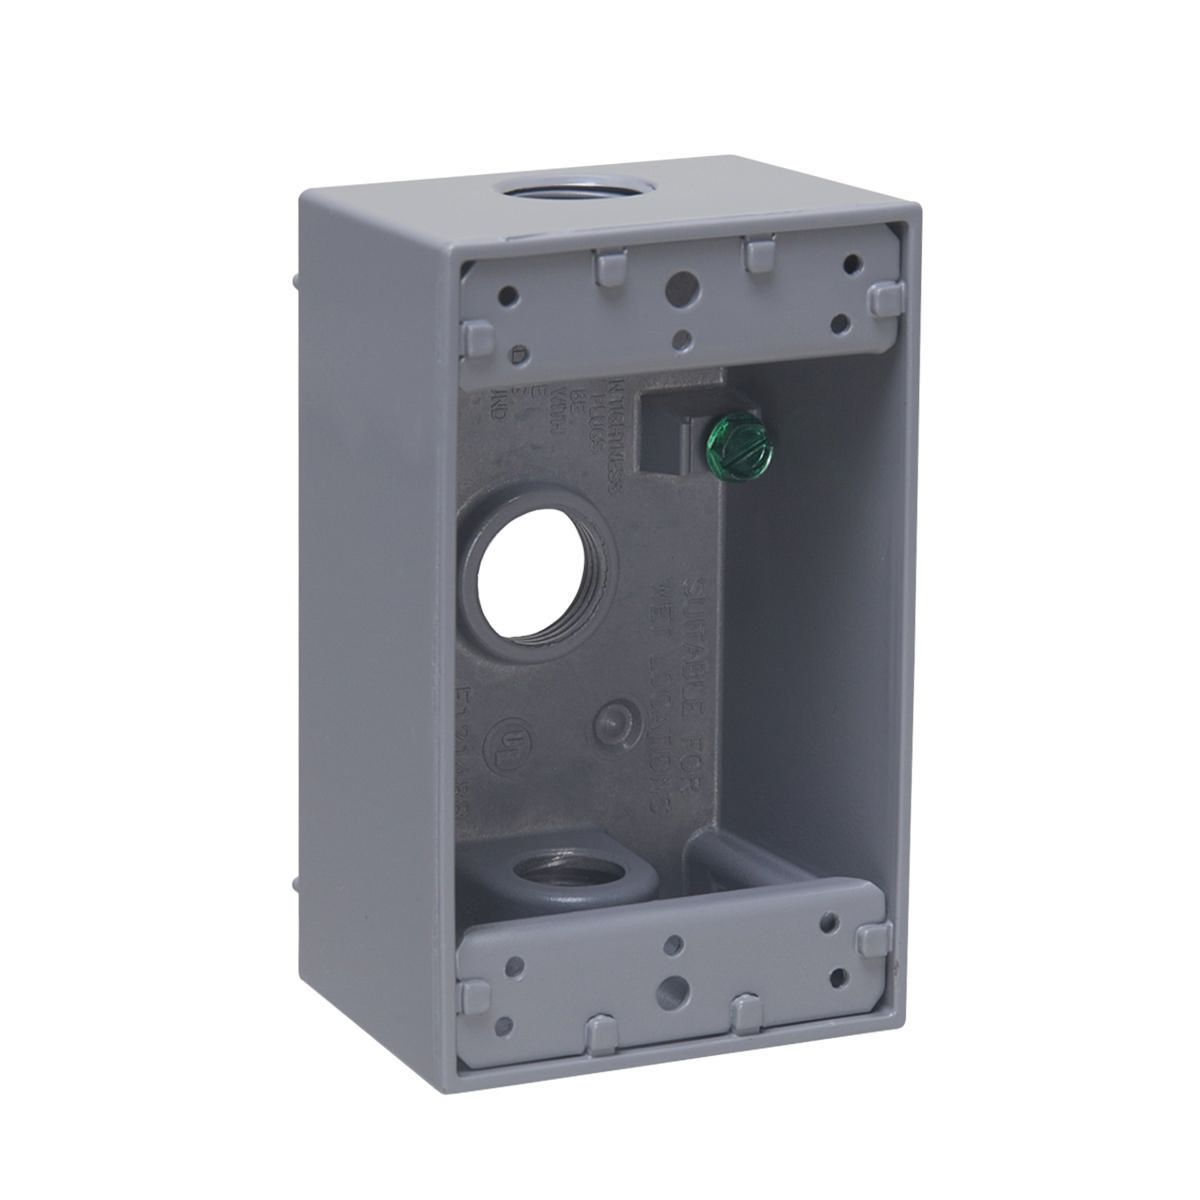 Hubbell-Raco 5320-0 BELL Weatherproof Outlet Box